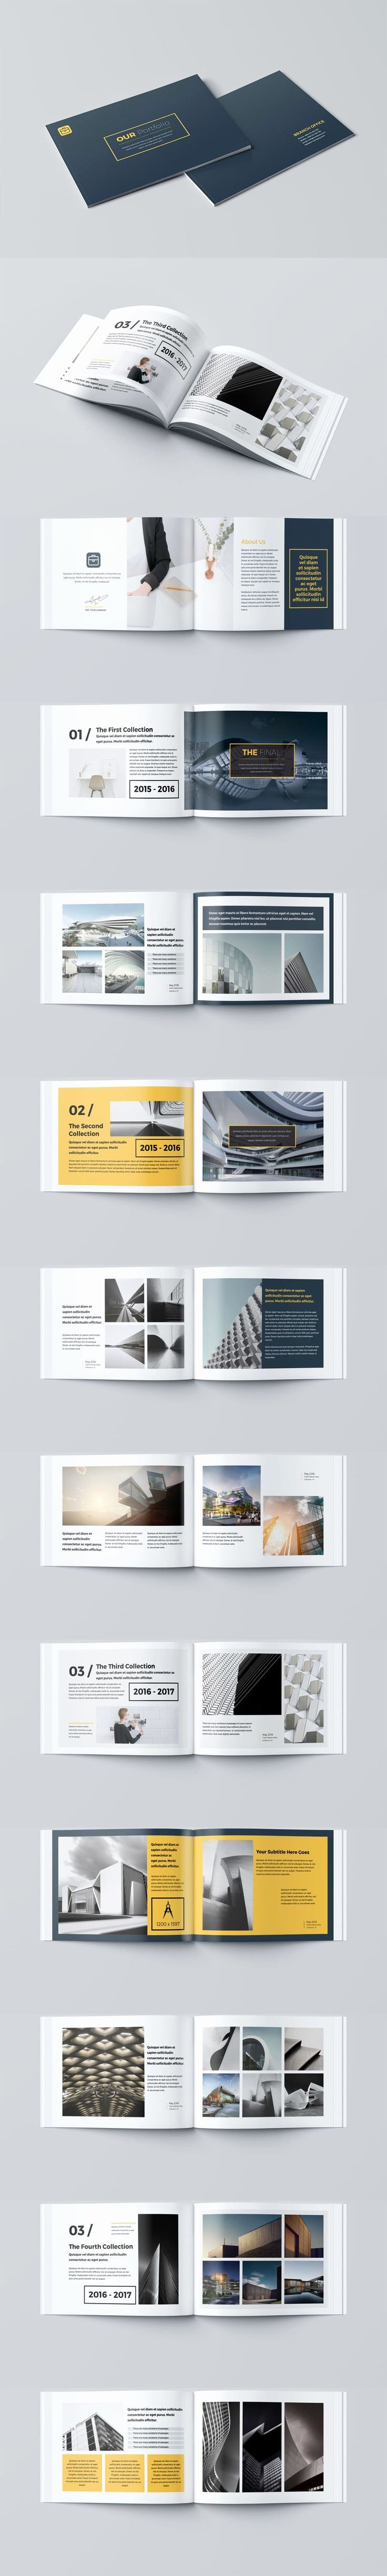 Architecture Portfolio Template Indesign Awesome Best 25 Architecture Portfolio Layout Ideas On Pinterest